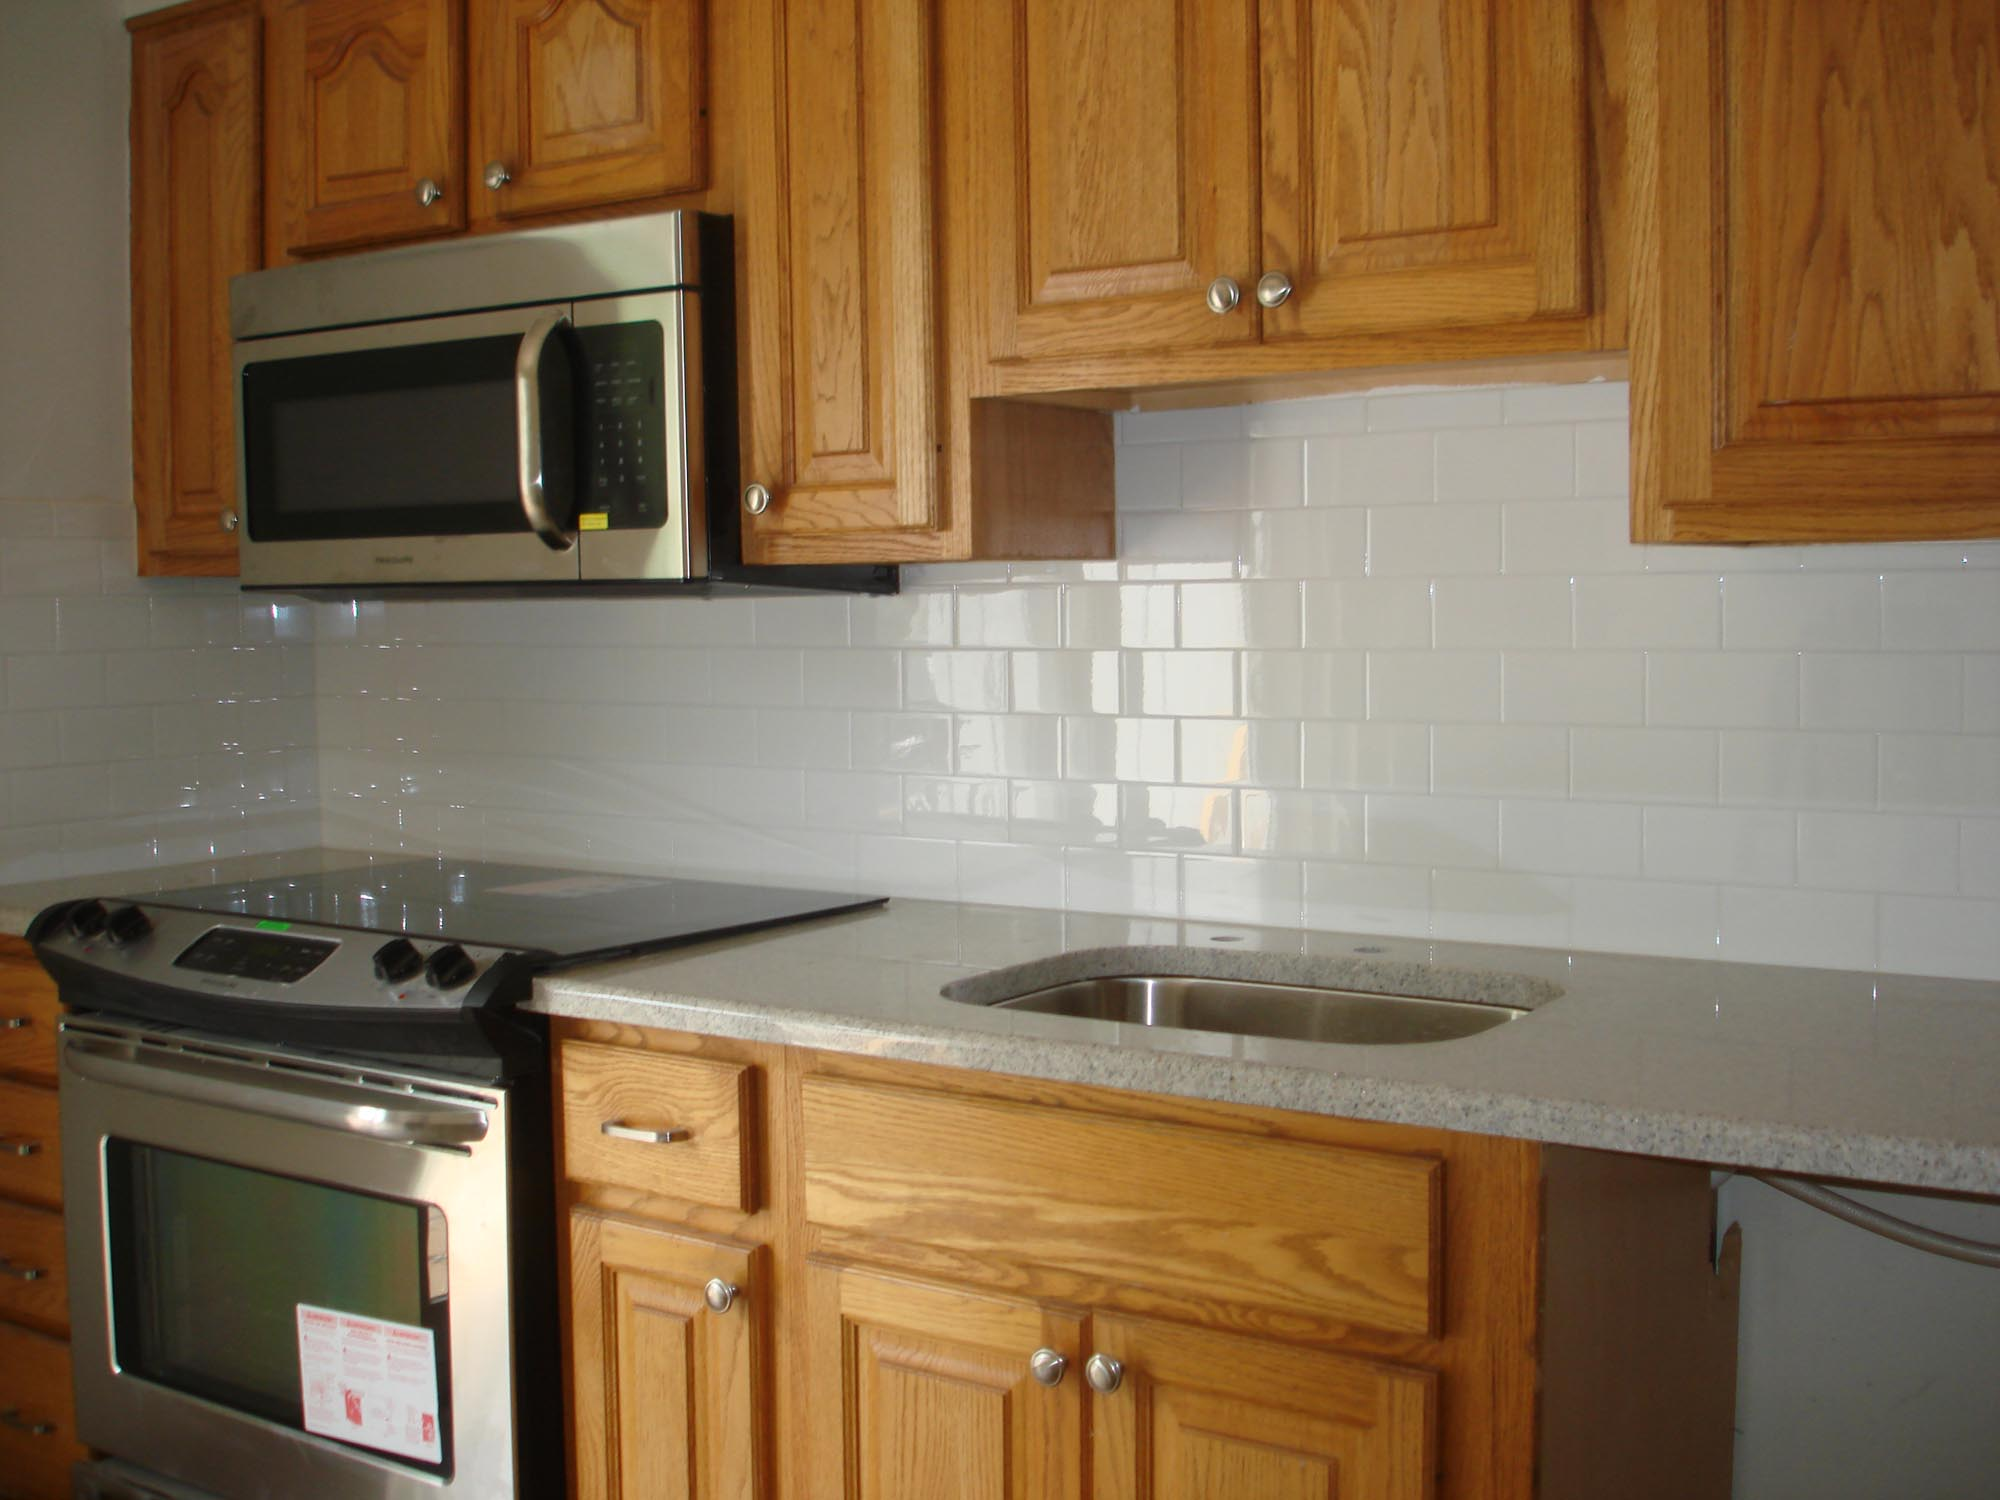 Clean And Simple Kitchen Backsplash White 3x6 Subway Tile